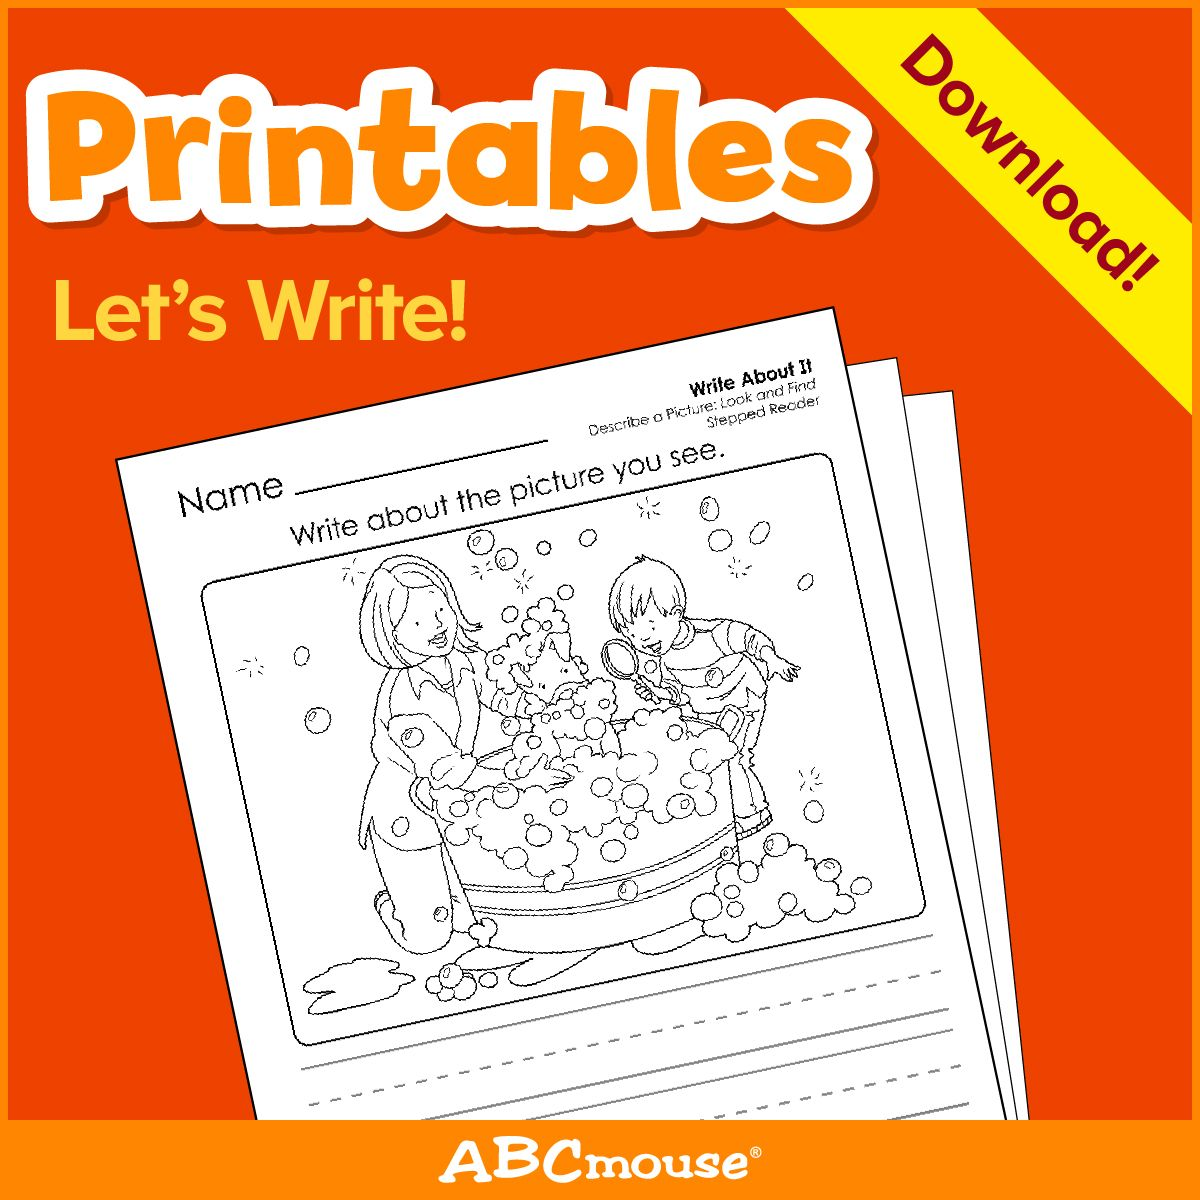 Printables Let S Write By Abcmouse Com In 2020 Writing Printables Writing Activities Writing